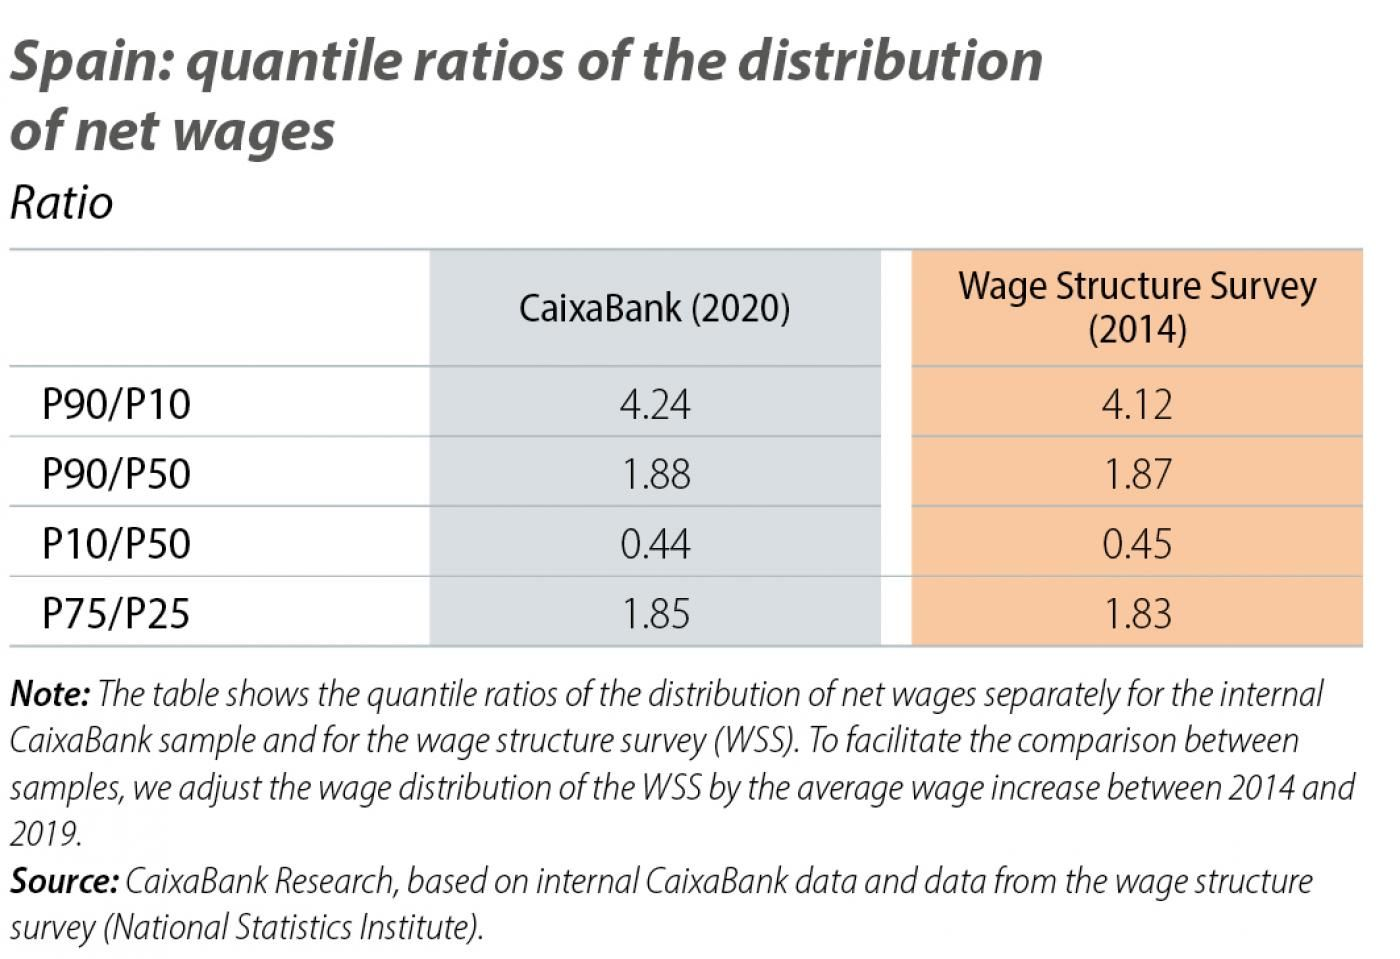 Spain: quantile ratios of the distribution of net wages